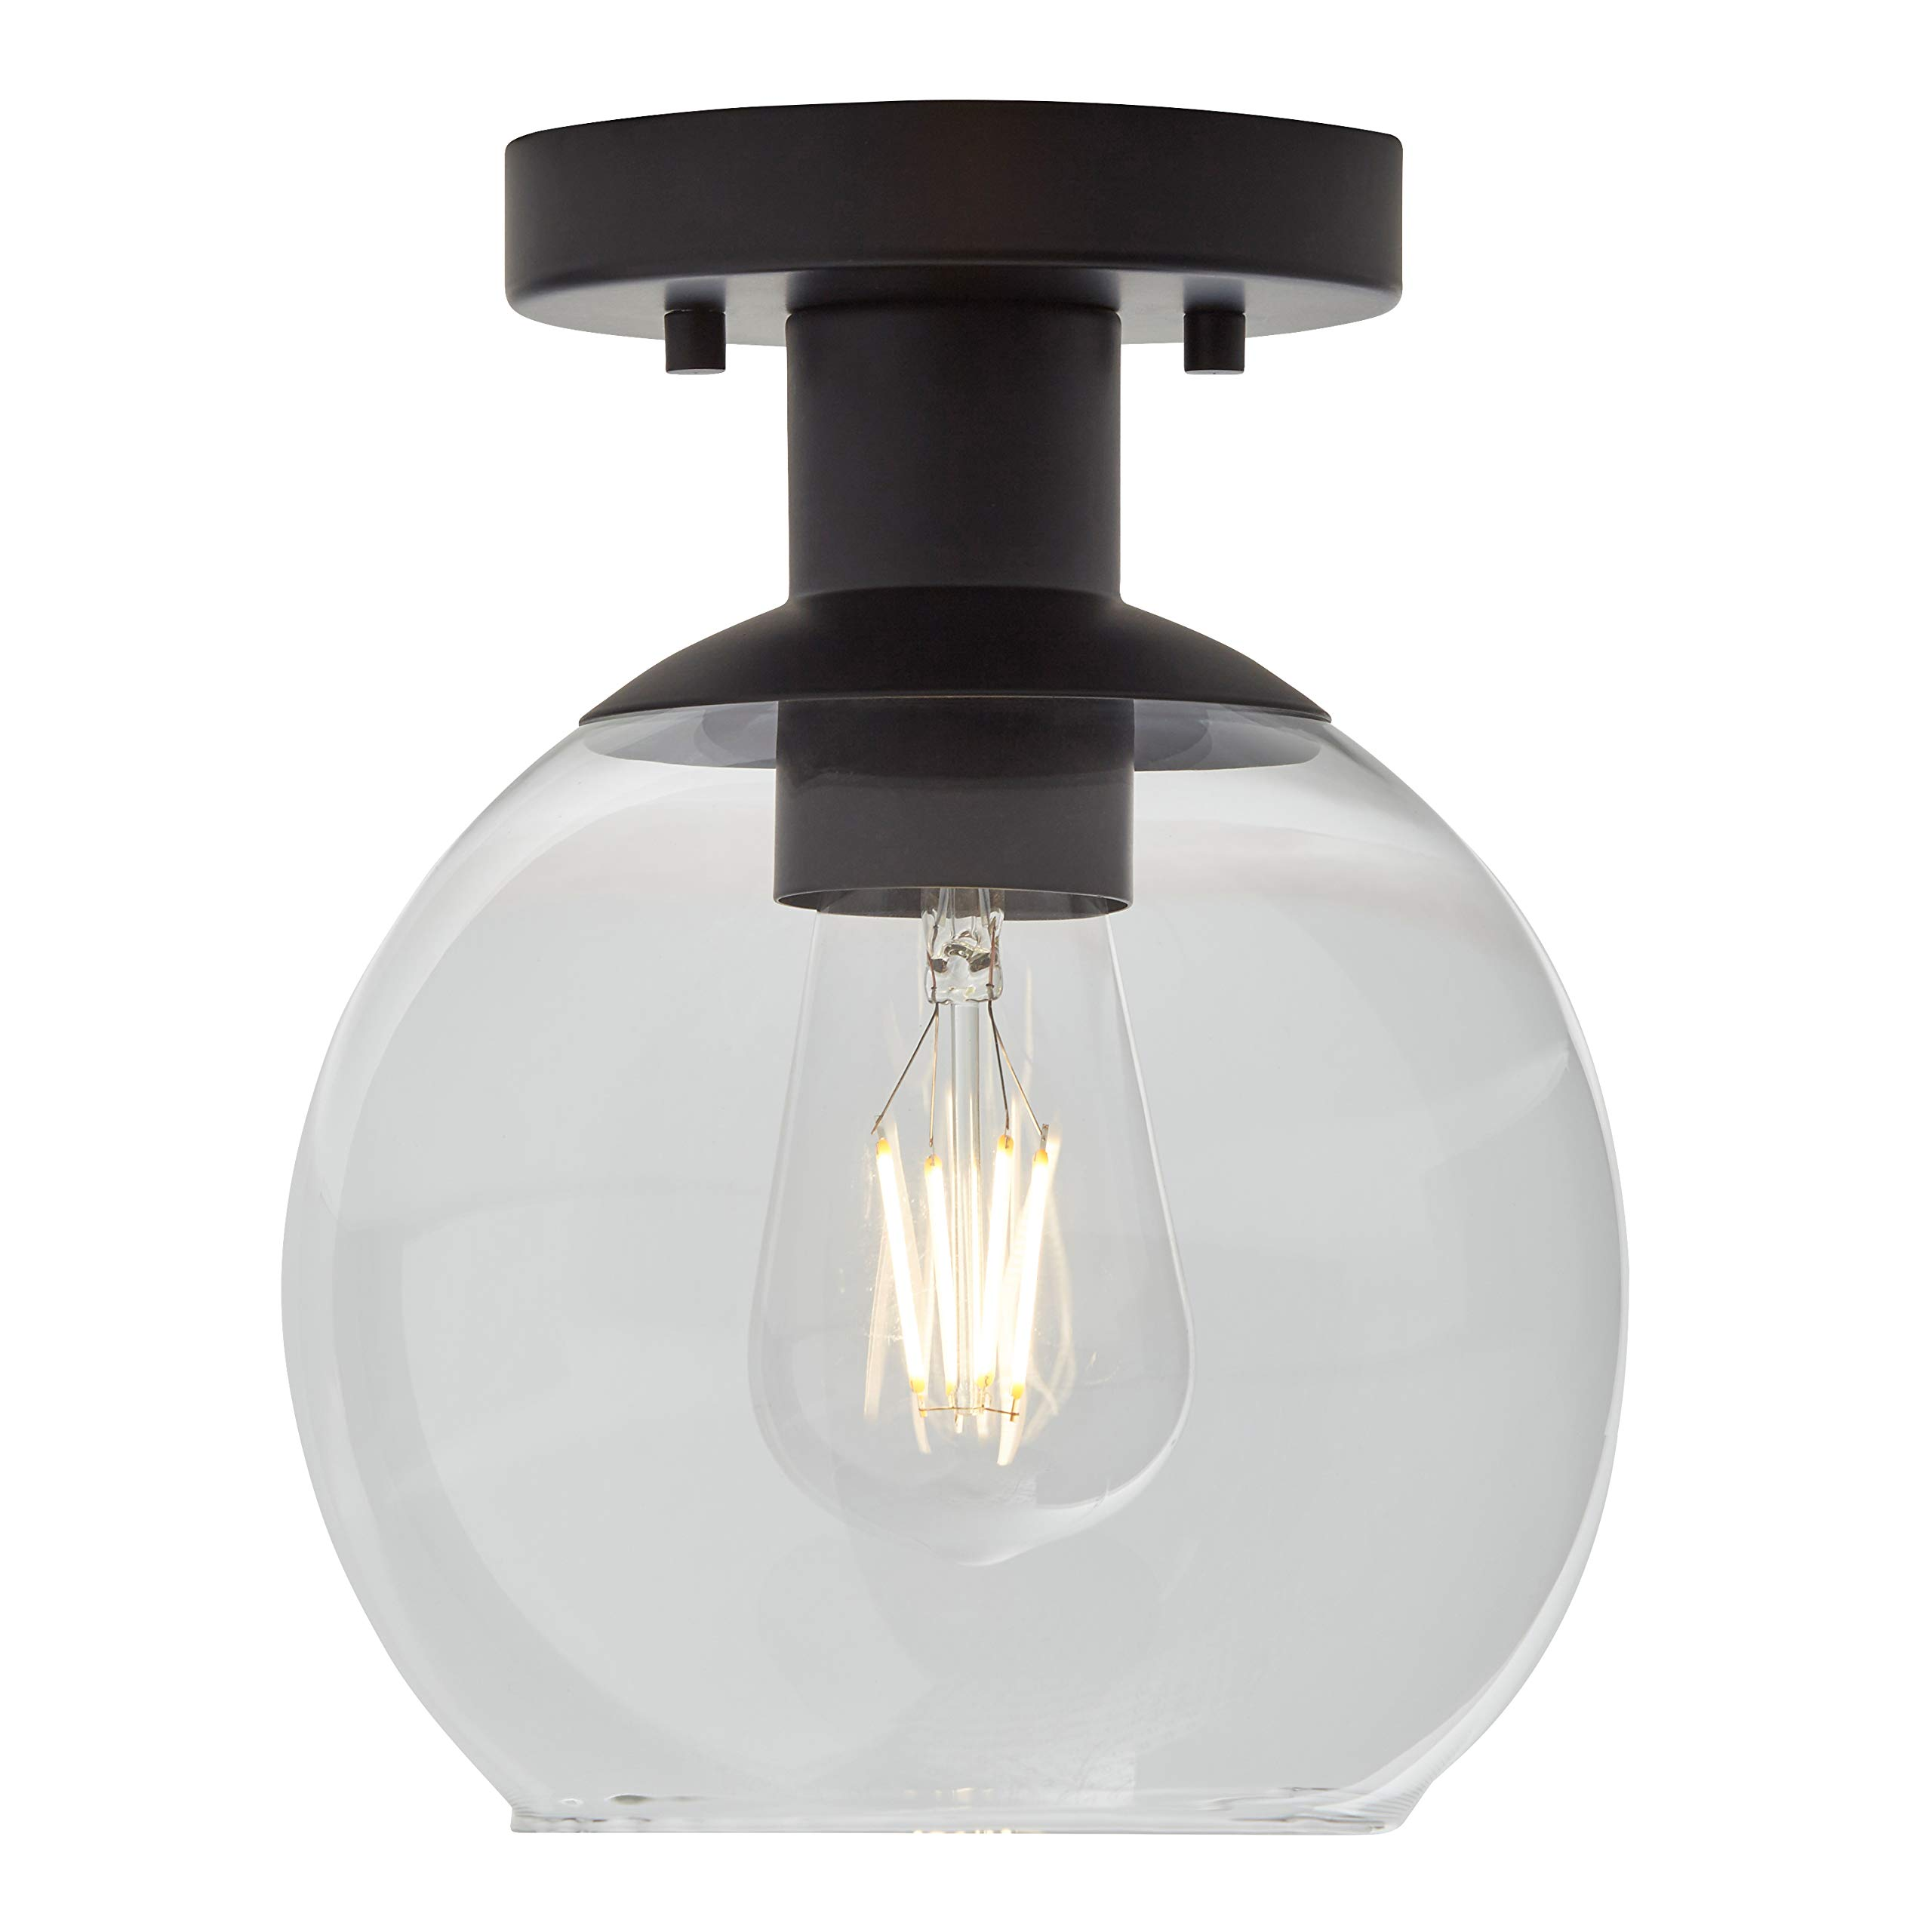 Rivet Mid-Century Flush-Mount with Bulb, 8.875''H, Black by Rivet (Image #3)